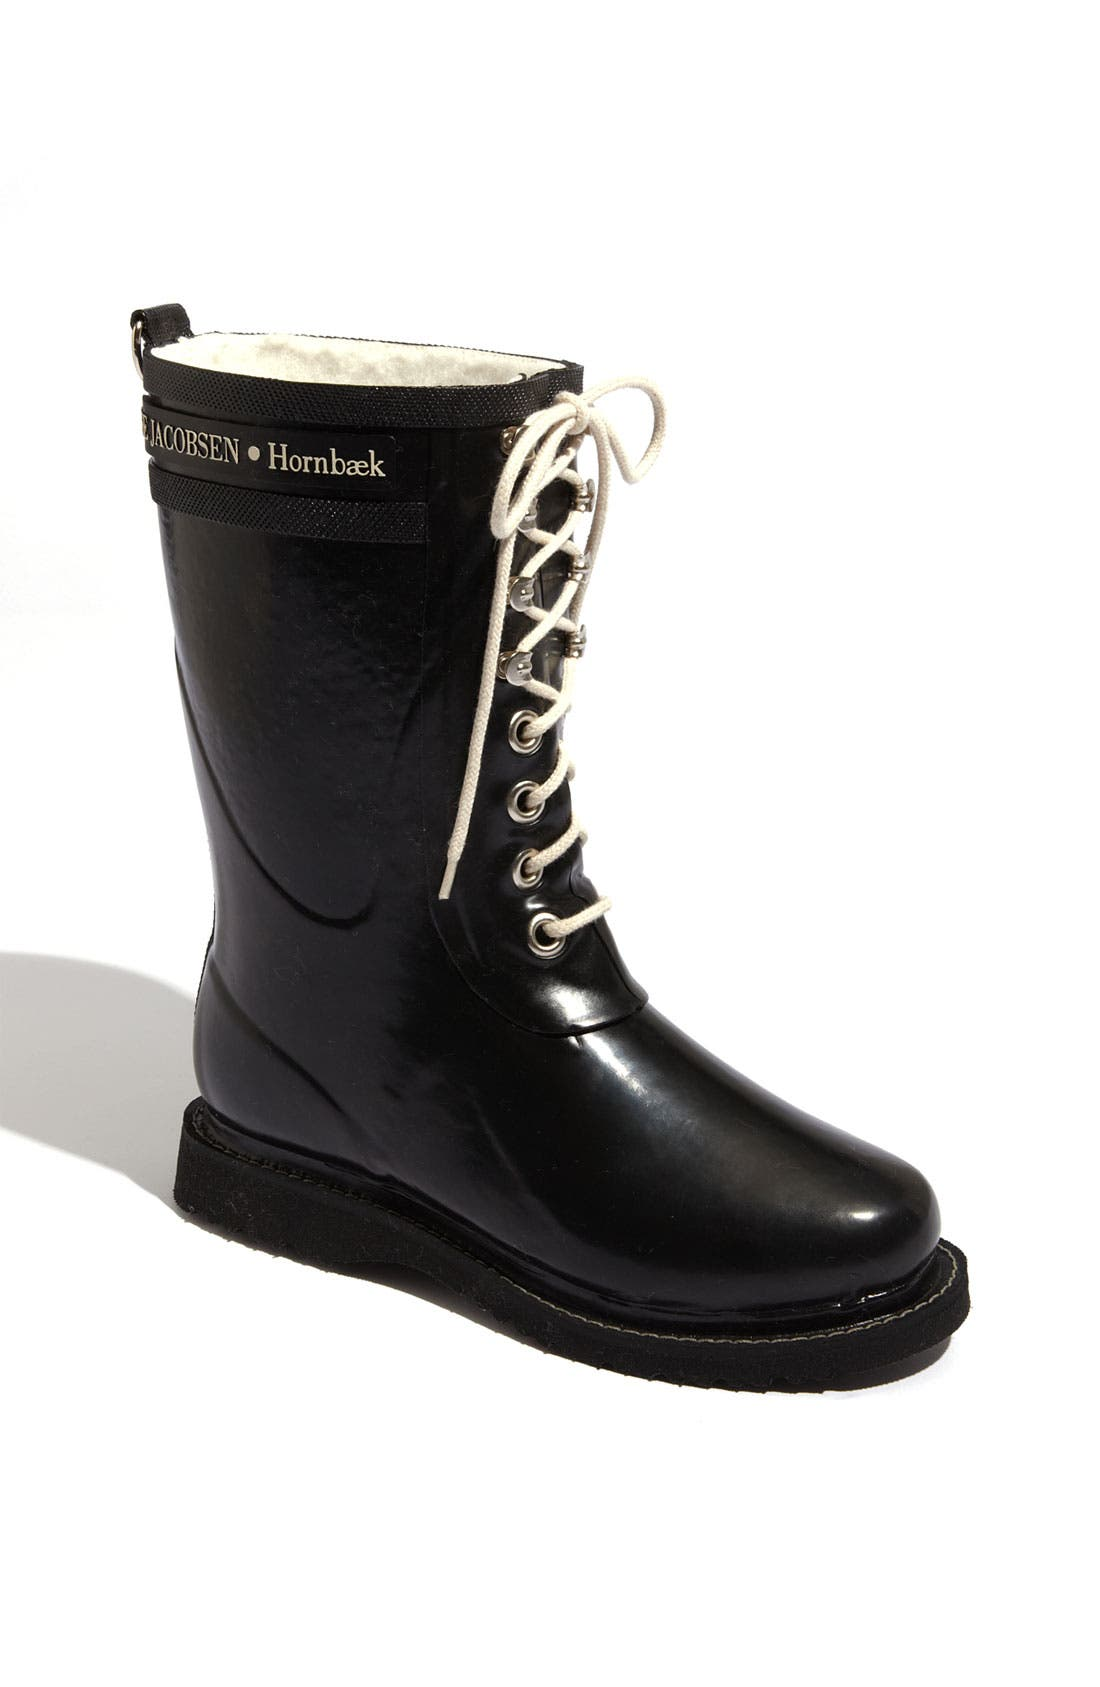 Ilse Jacobsen Hornbæk Rubber Boot